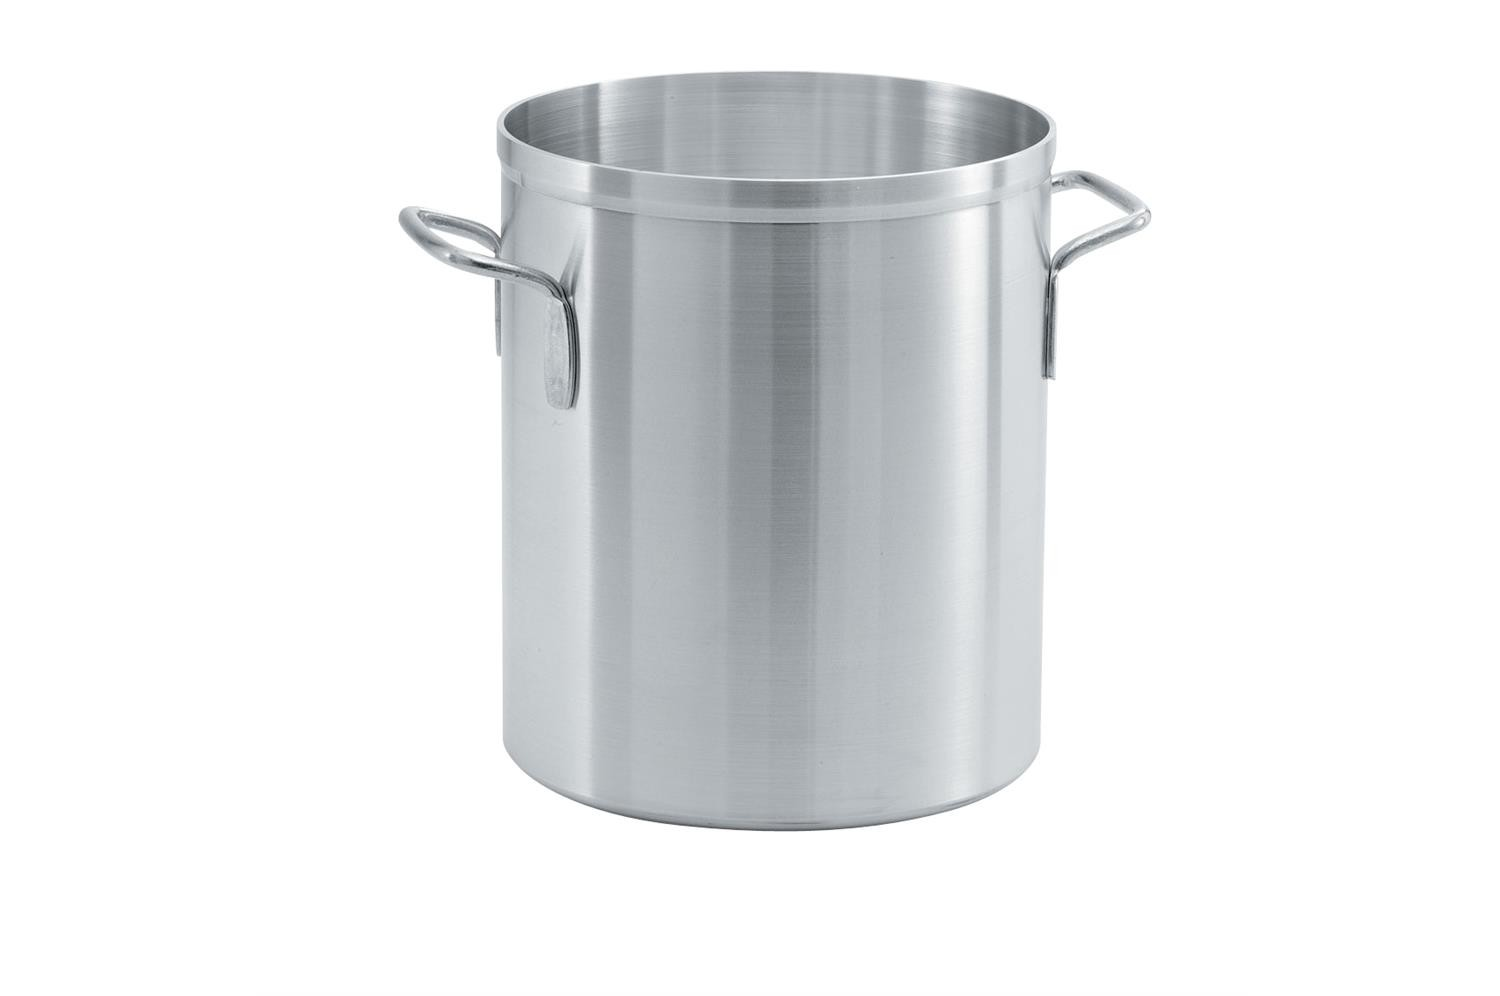 Vollrath 67516 Wear-Ever Classic Aluminum Stock Pot 16 Qt.